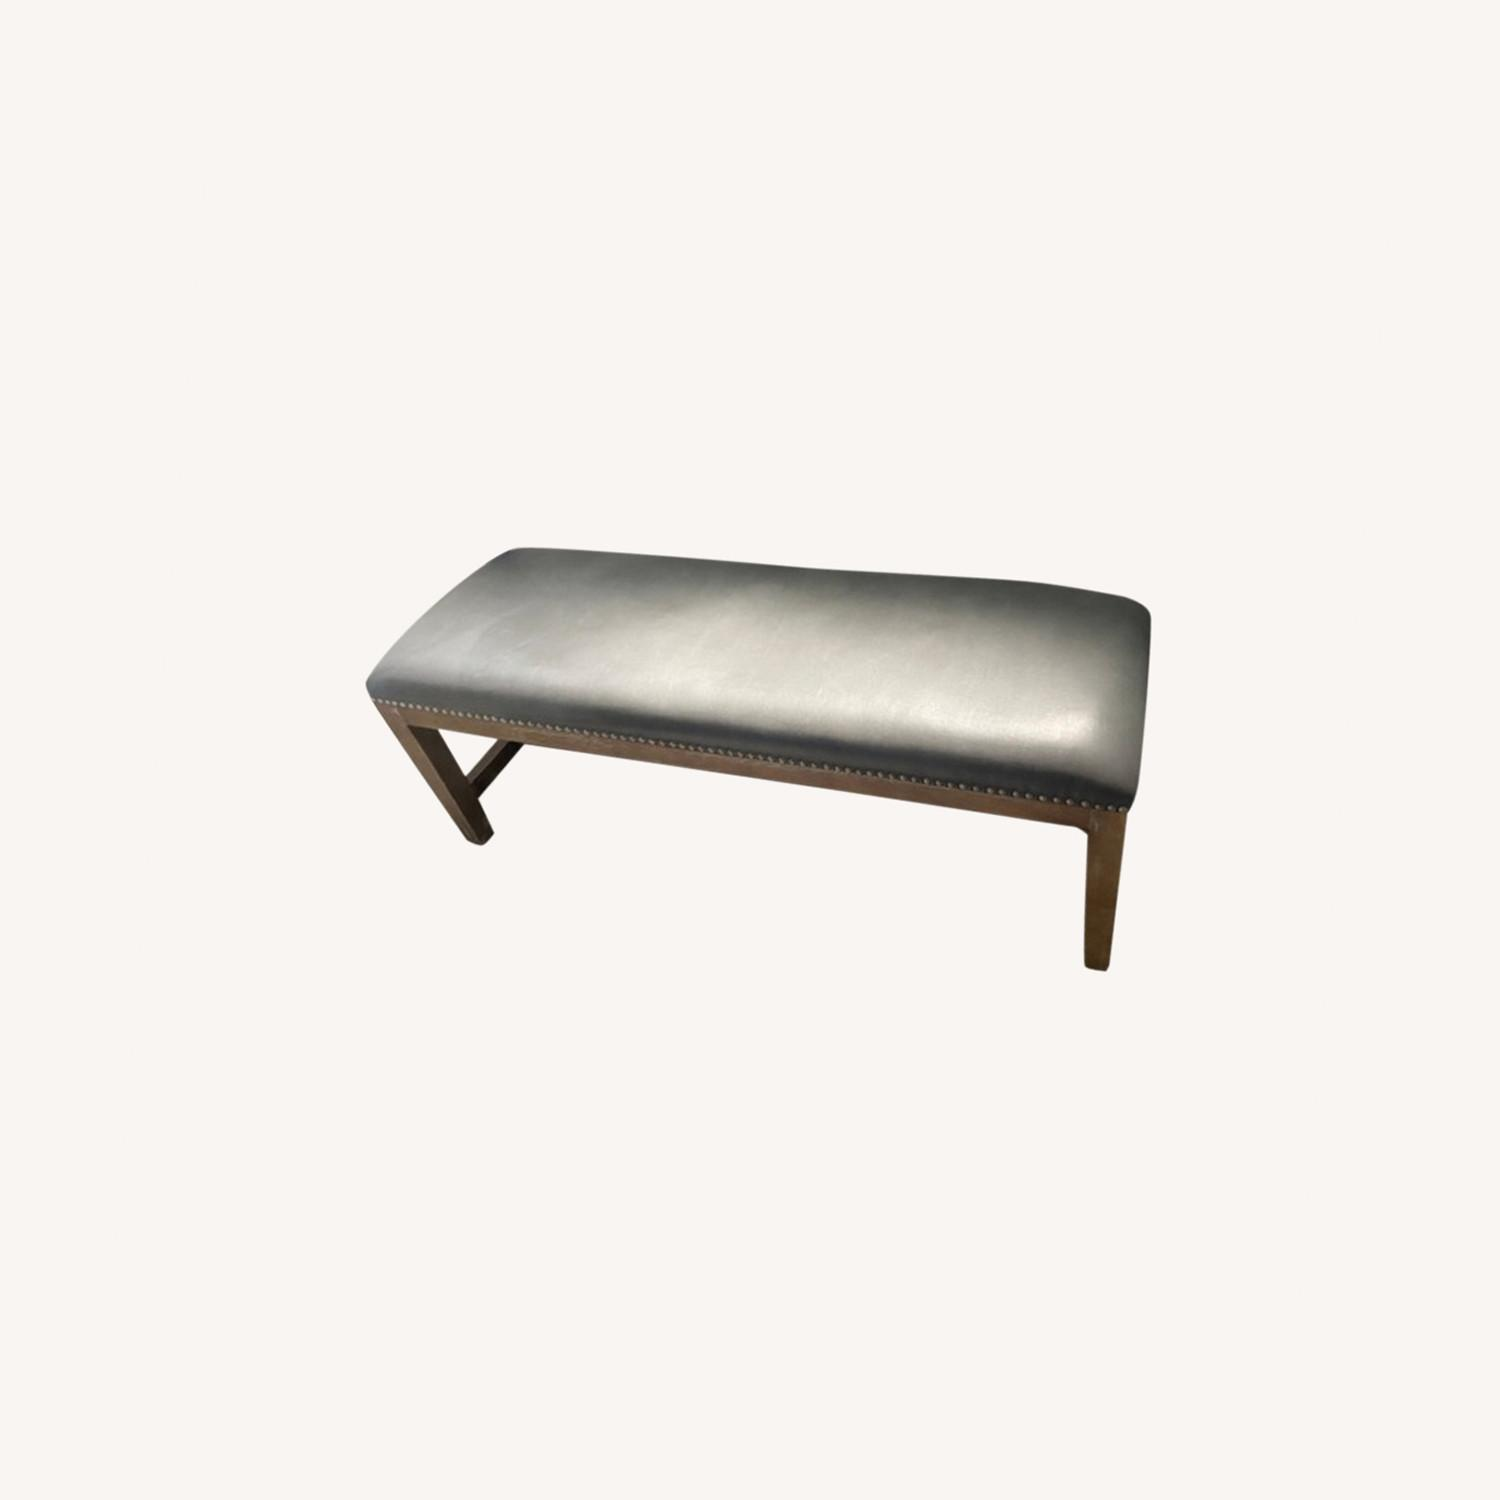 Gray Leather Bench with Studs - image-0